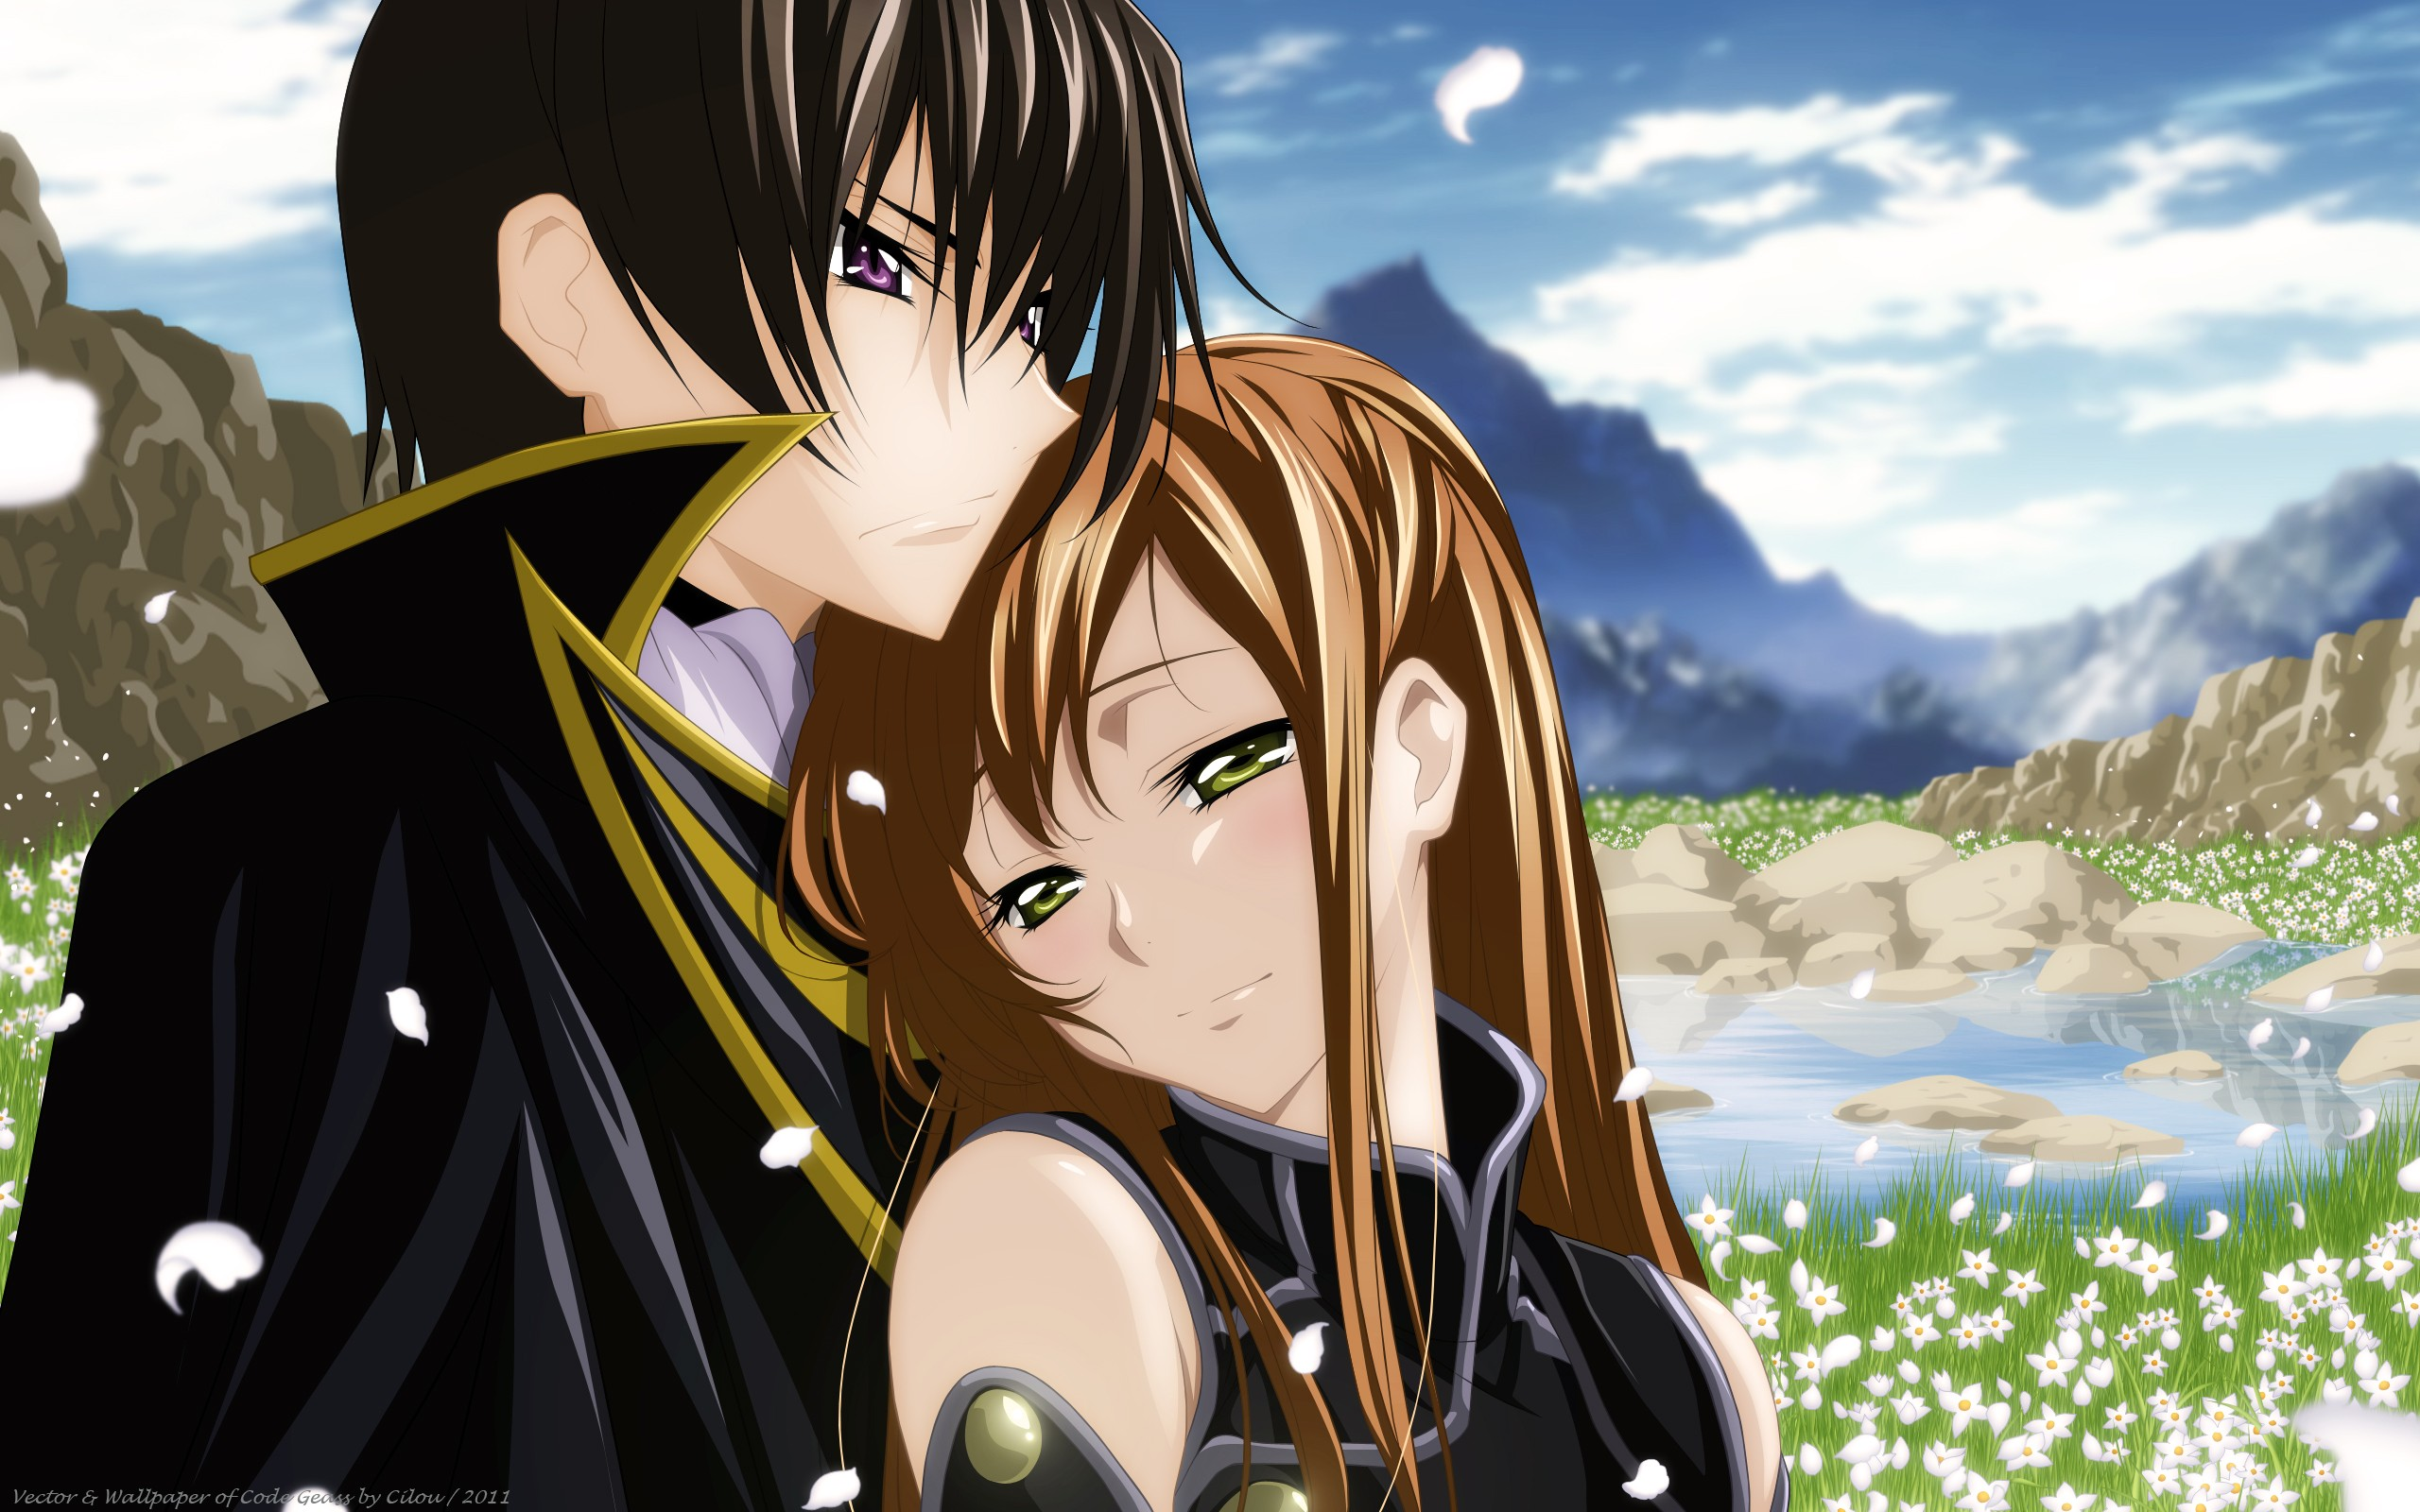 Code Geass Wallpaper Download Free Awesome High Resolution